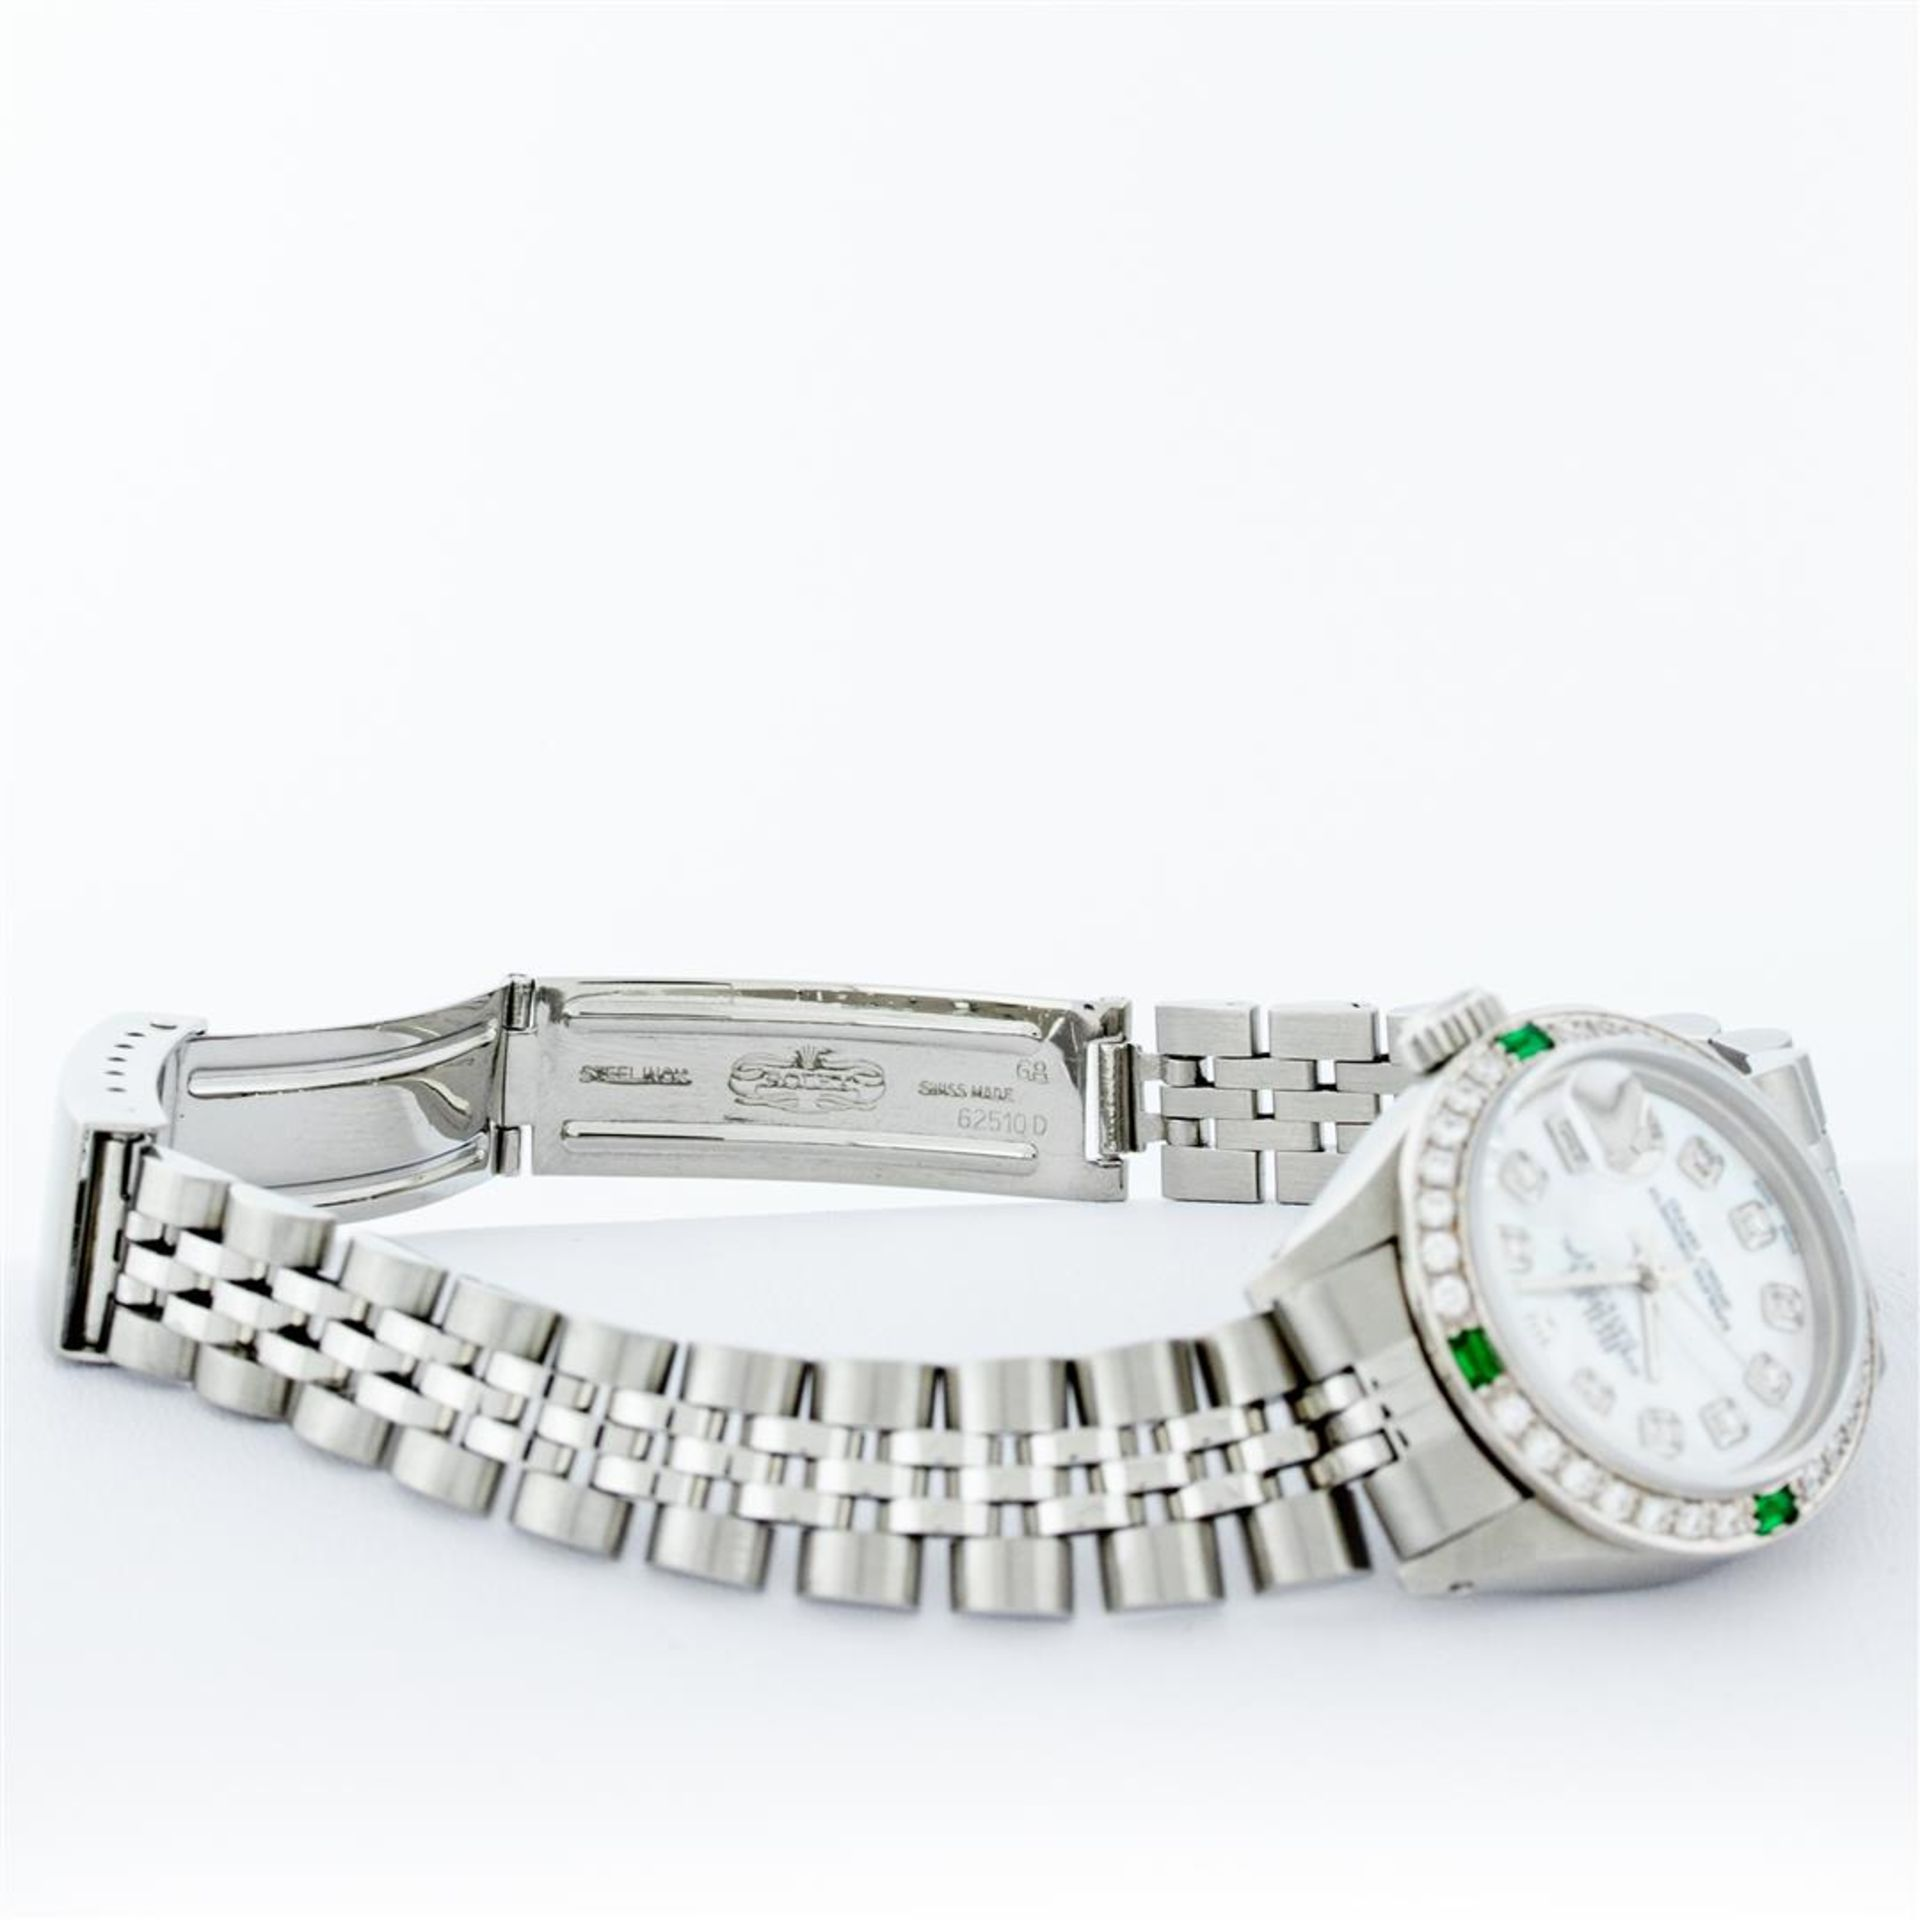 Rolex Ladies Stainless Steel Mother Of Pearl Diamond 26MM Datejust Wristwatch - Image 7 of 9